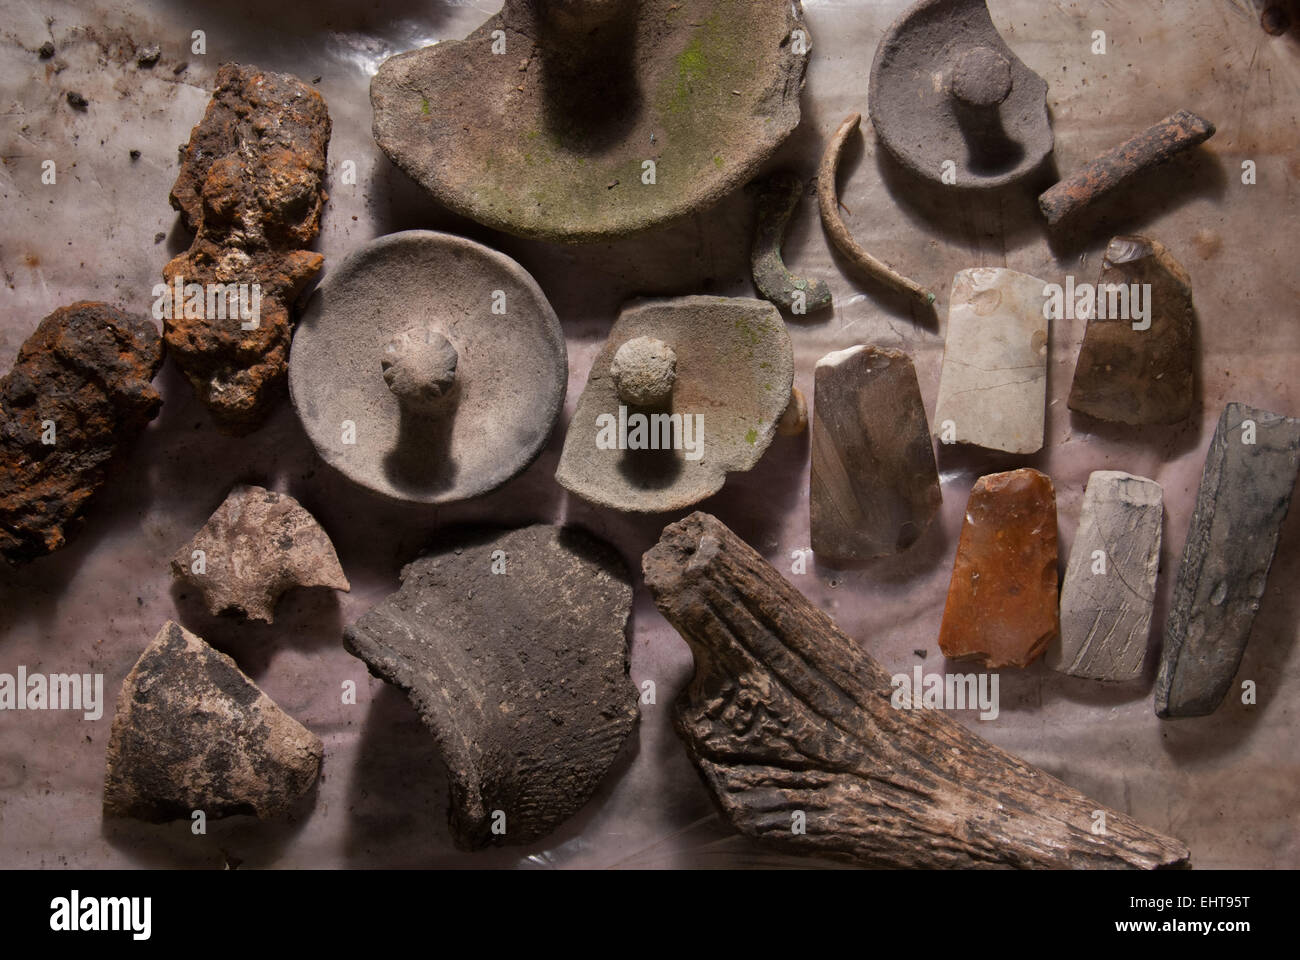 Protohistory (earlyhistory) tools excavated in Buni village, West Java province, Indonesia. - Stock Image